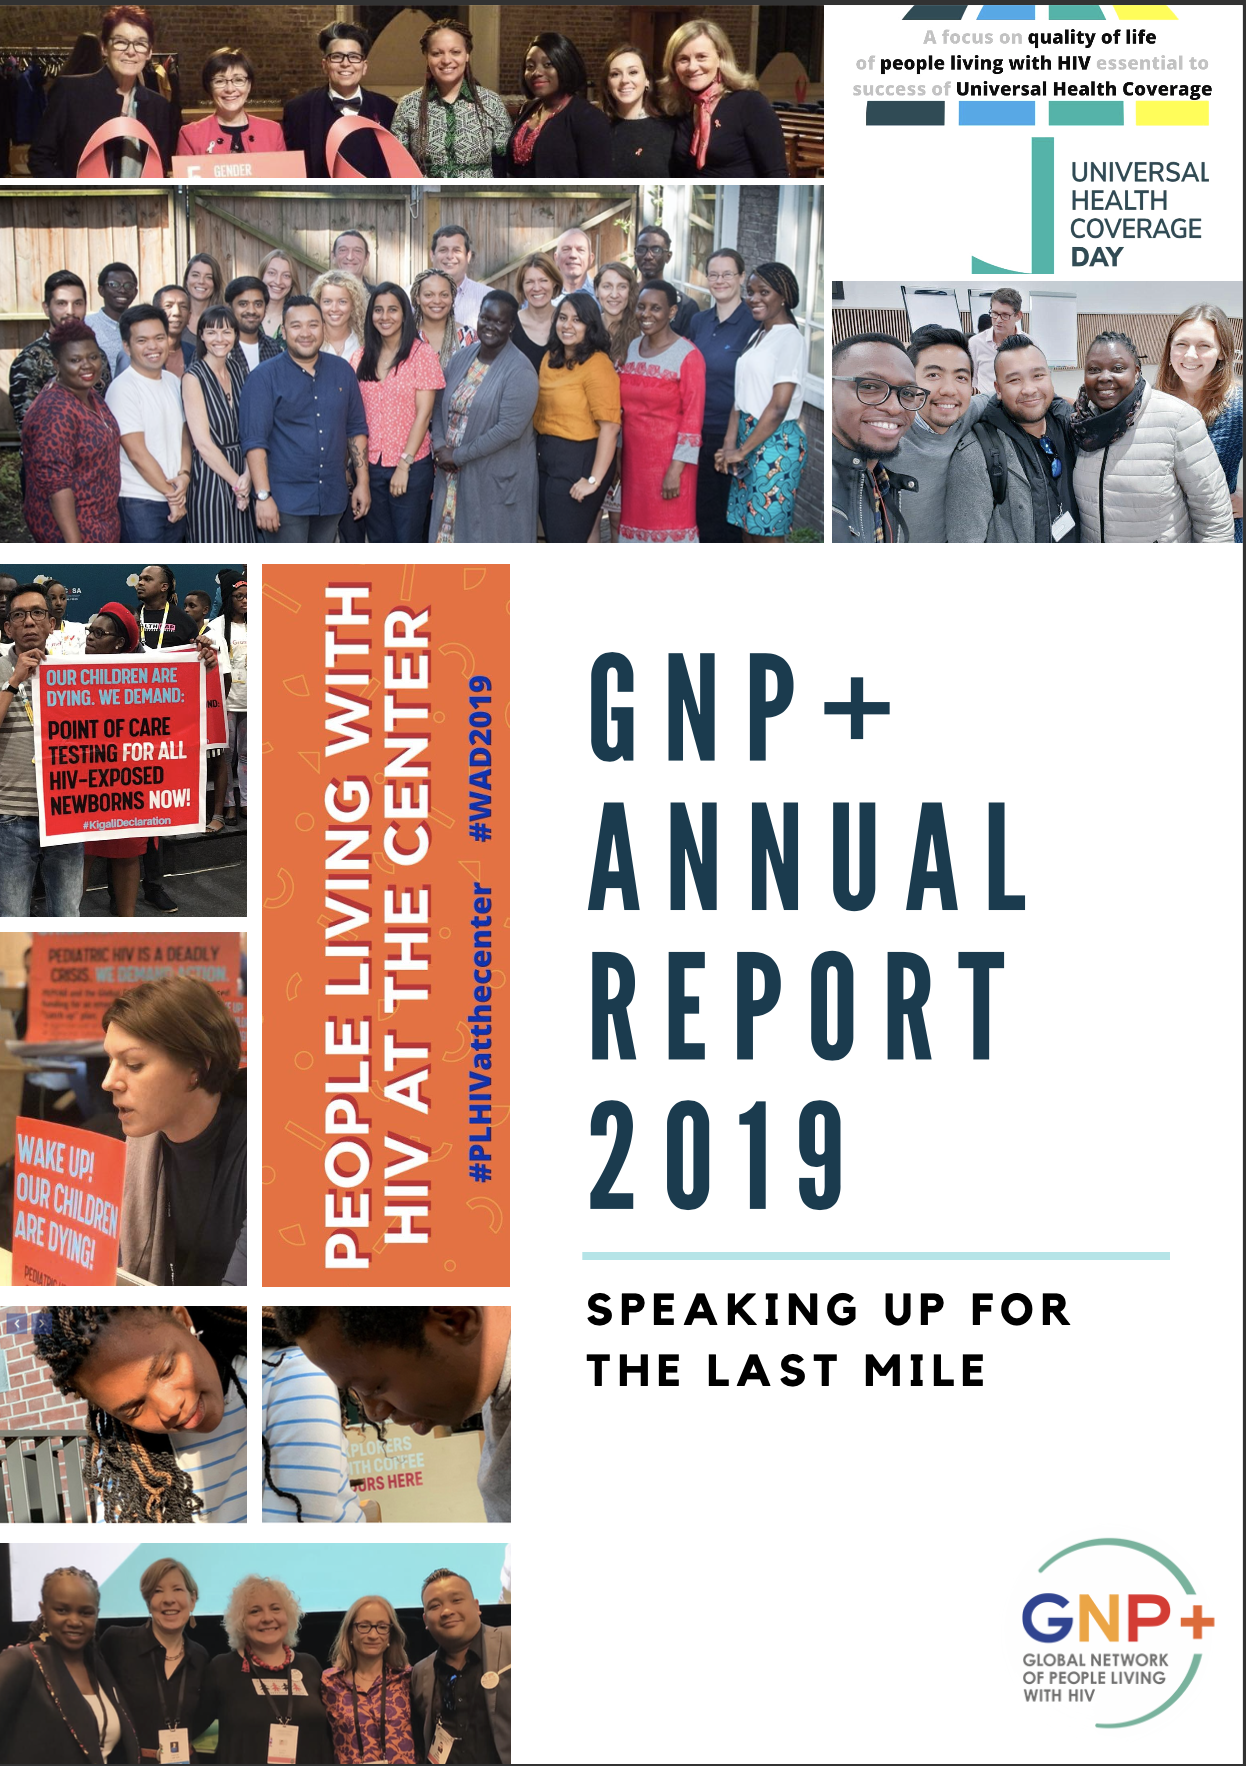 GNP+ 2019 Annual Report